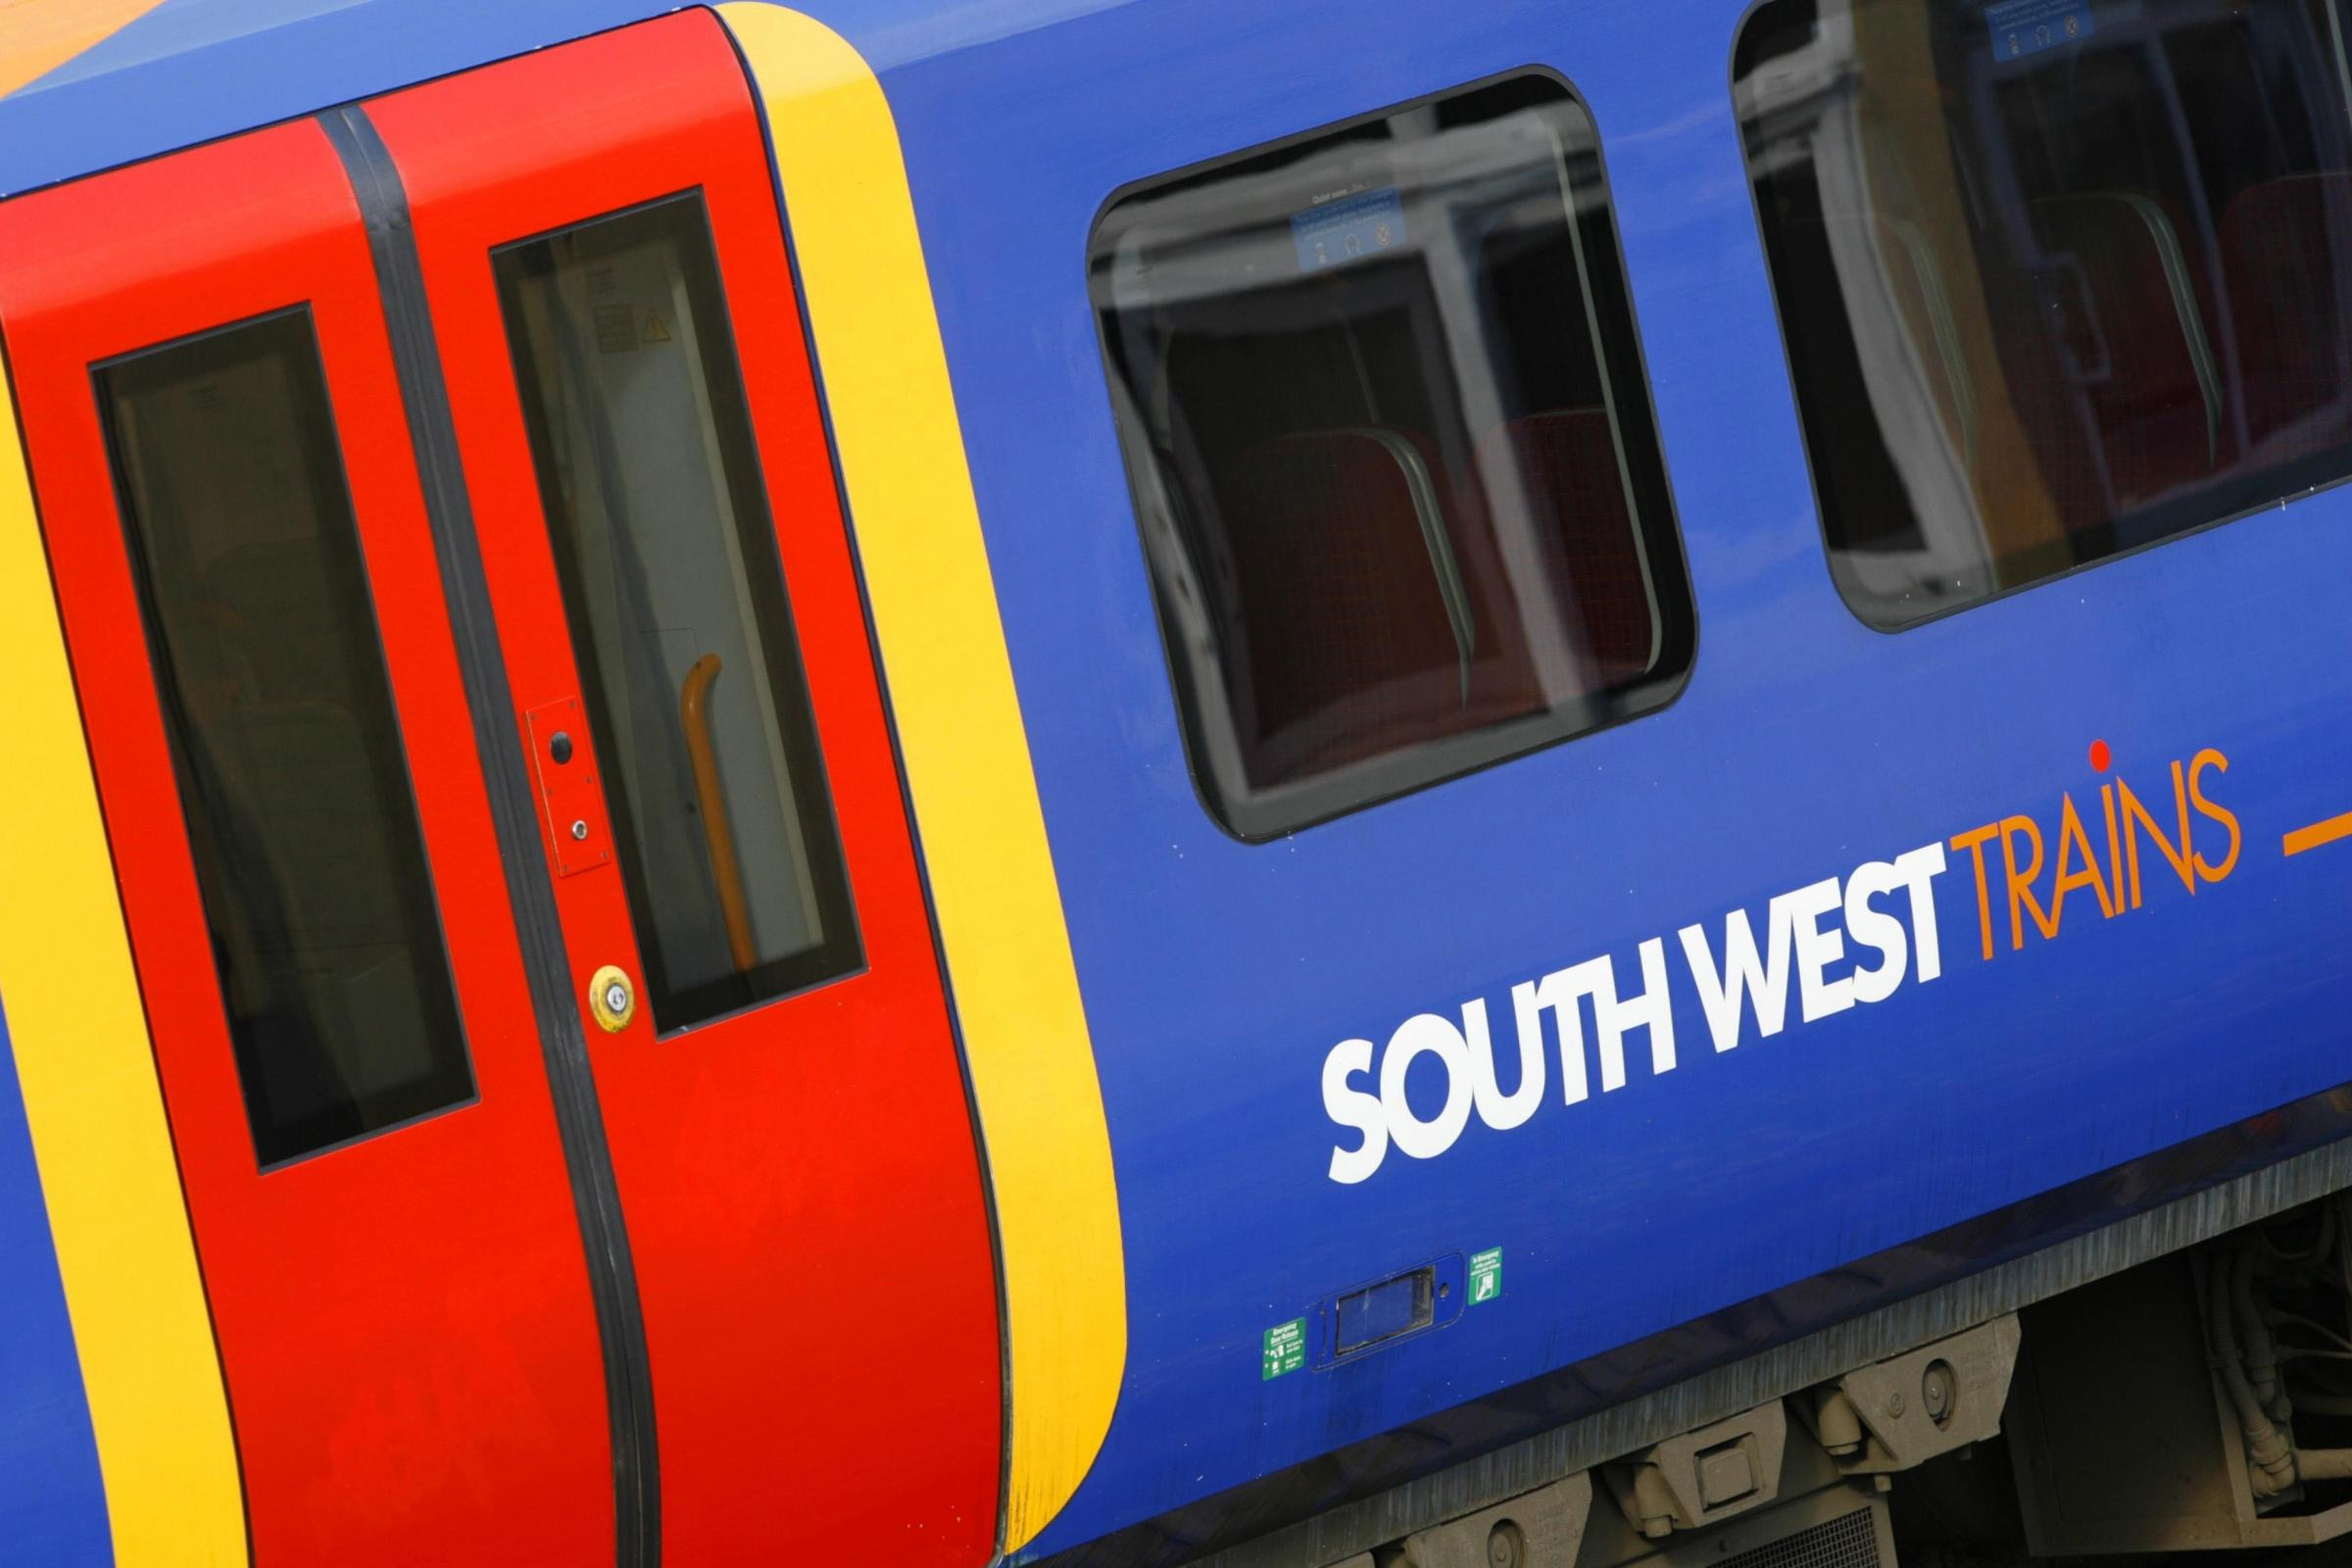 Hampshire commuters to benefit from millions spent on faster internet on trains